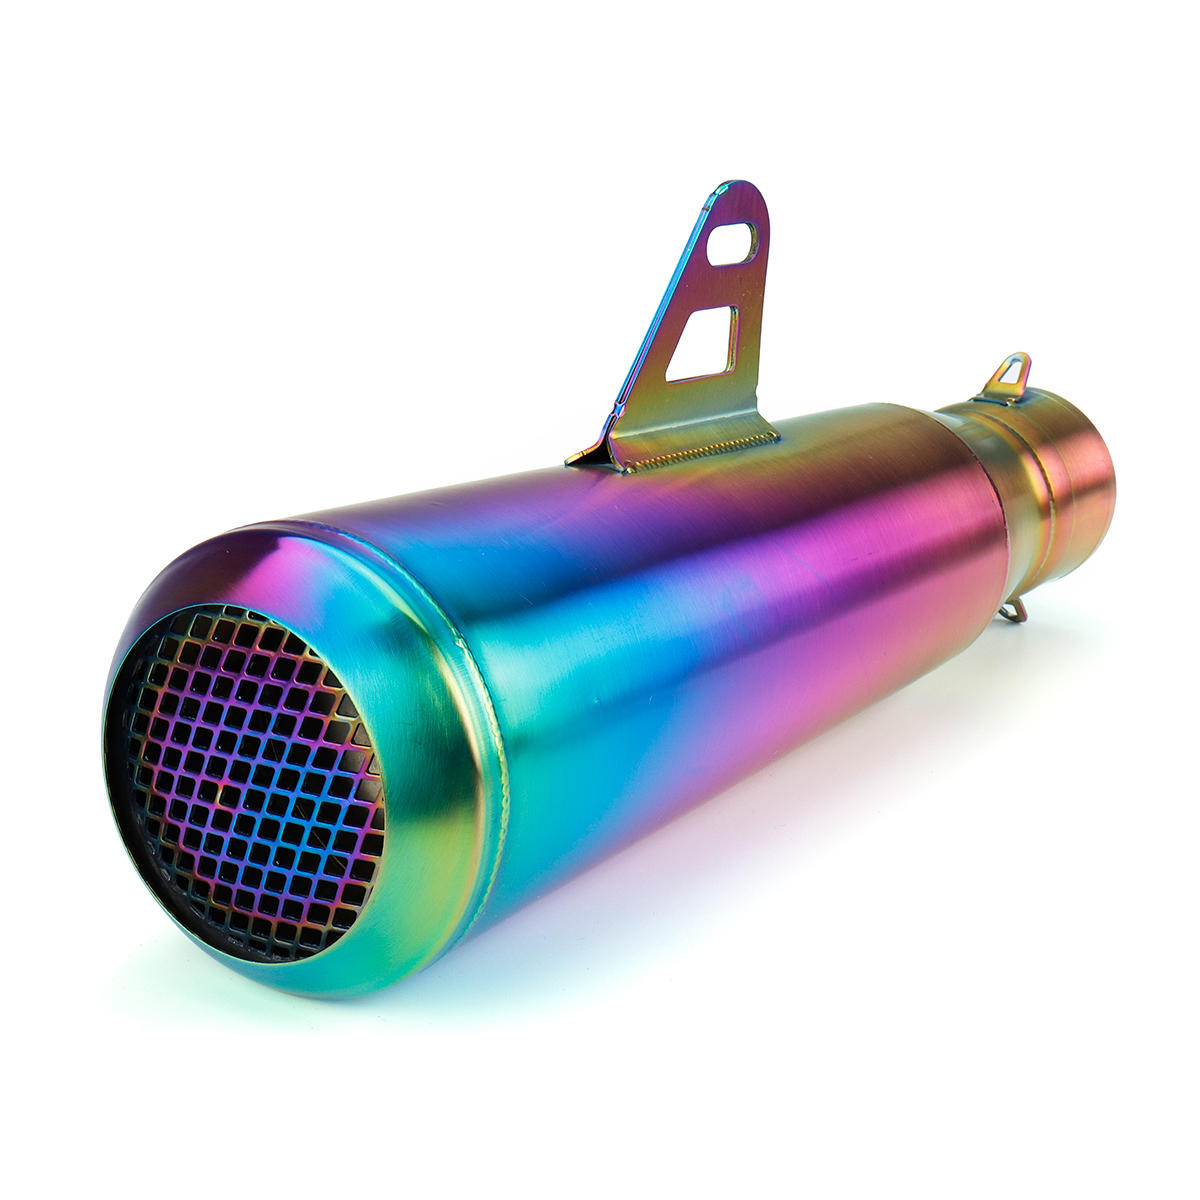 38-51mm Stainless Steel Motorcycle Exhaust Muffler Pipe Mesh Outlet Colorful Universal